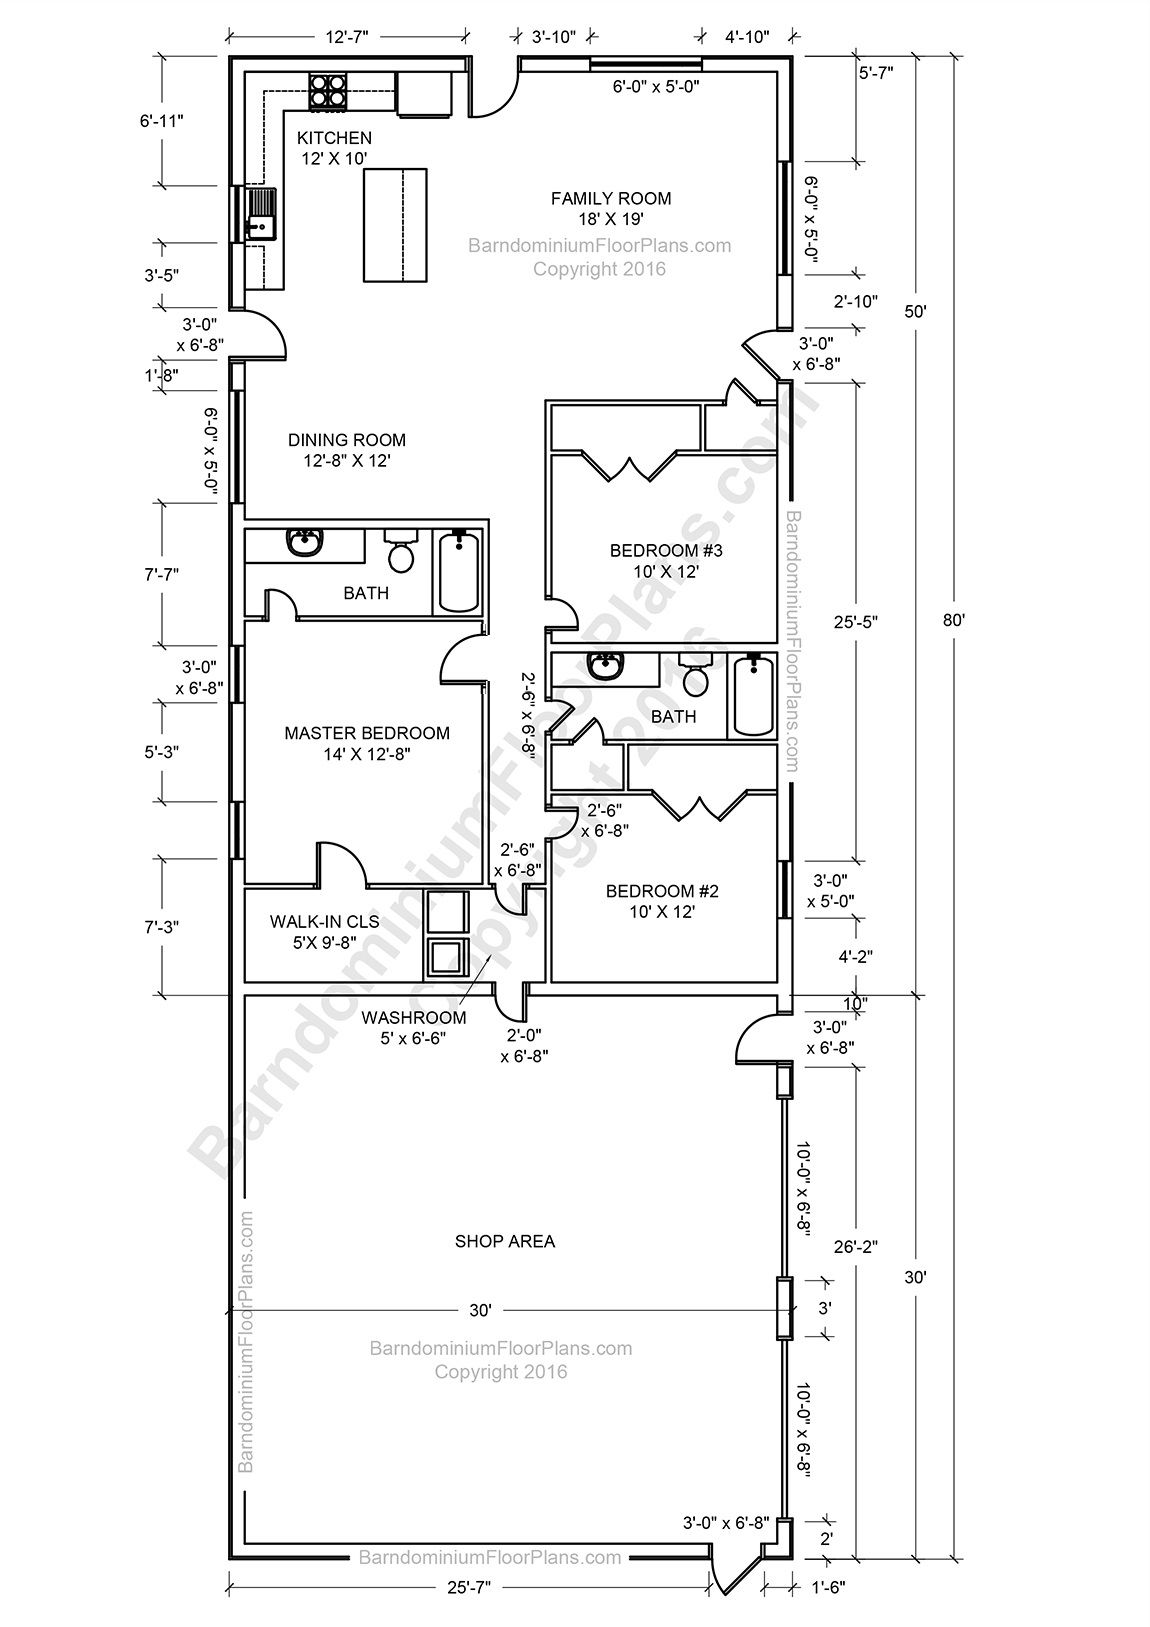 Barndominium Floor Plans Pole Barn House Plans And Metal Barn Homes Barndominium Floor Plans Barndominium Floor Plans Loft Floor Plans Farmhouse Floor Plans